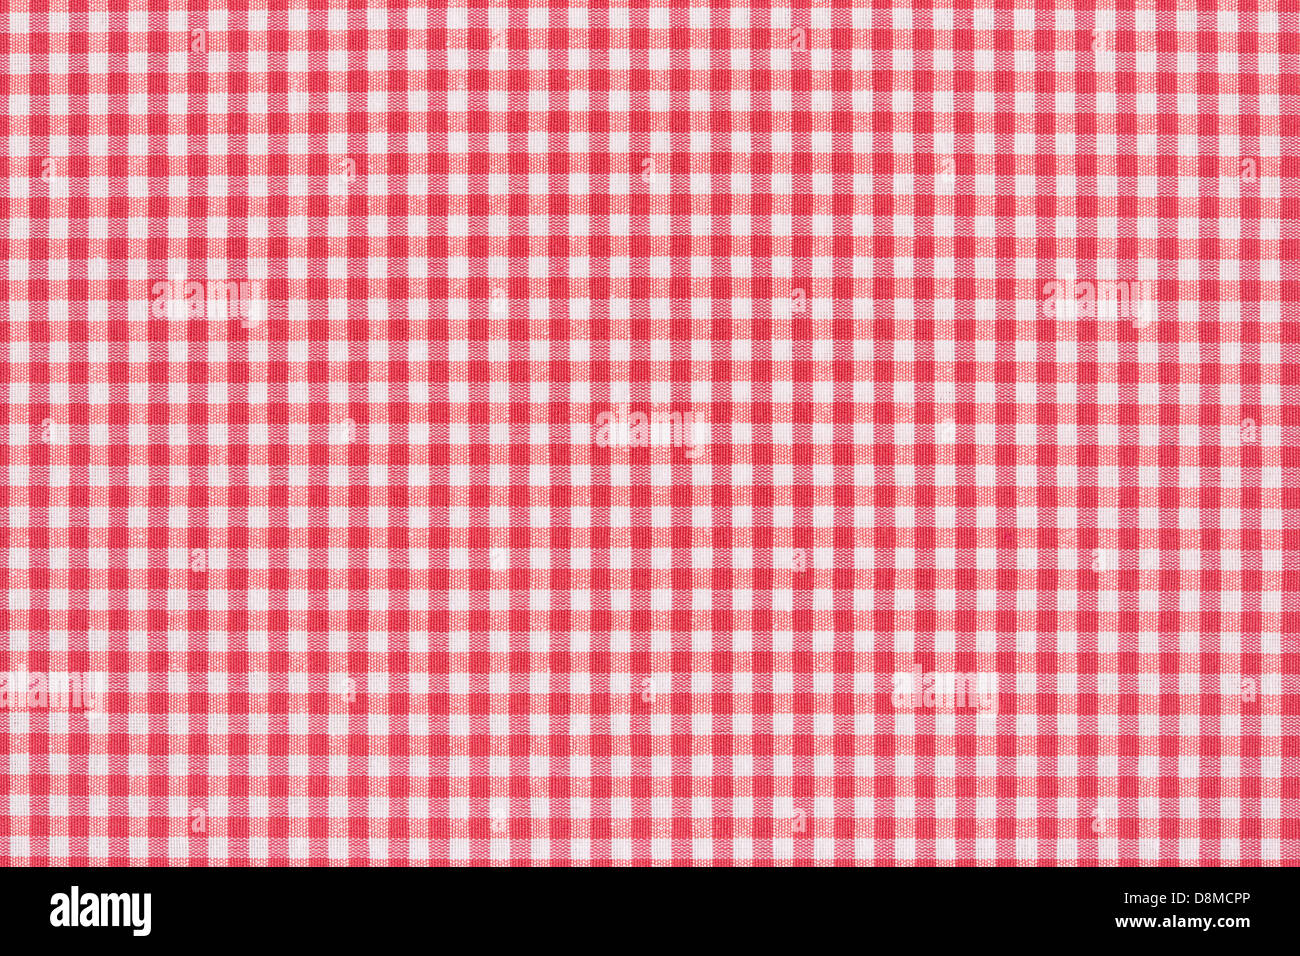 Red and white tablecloth texture - Stock Image